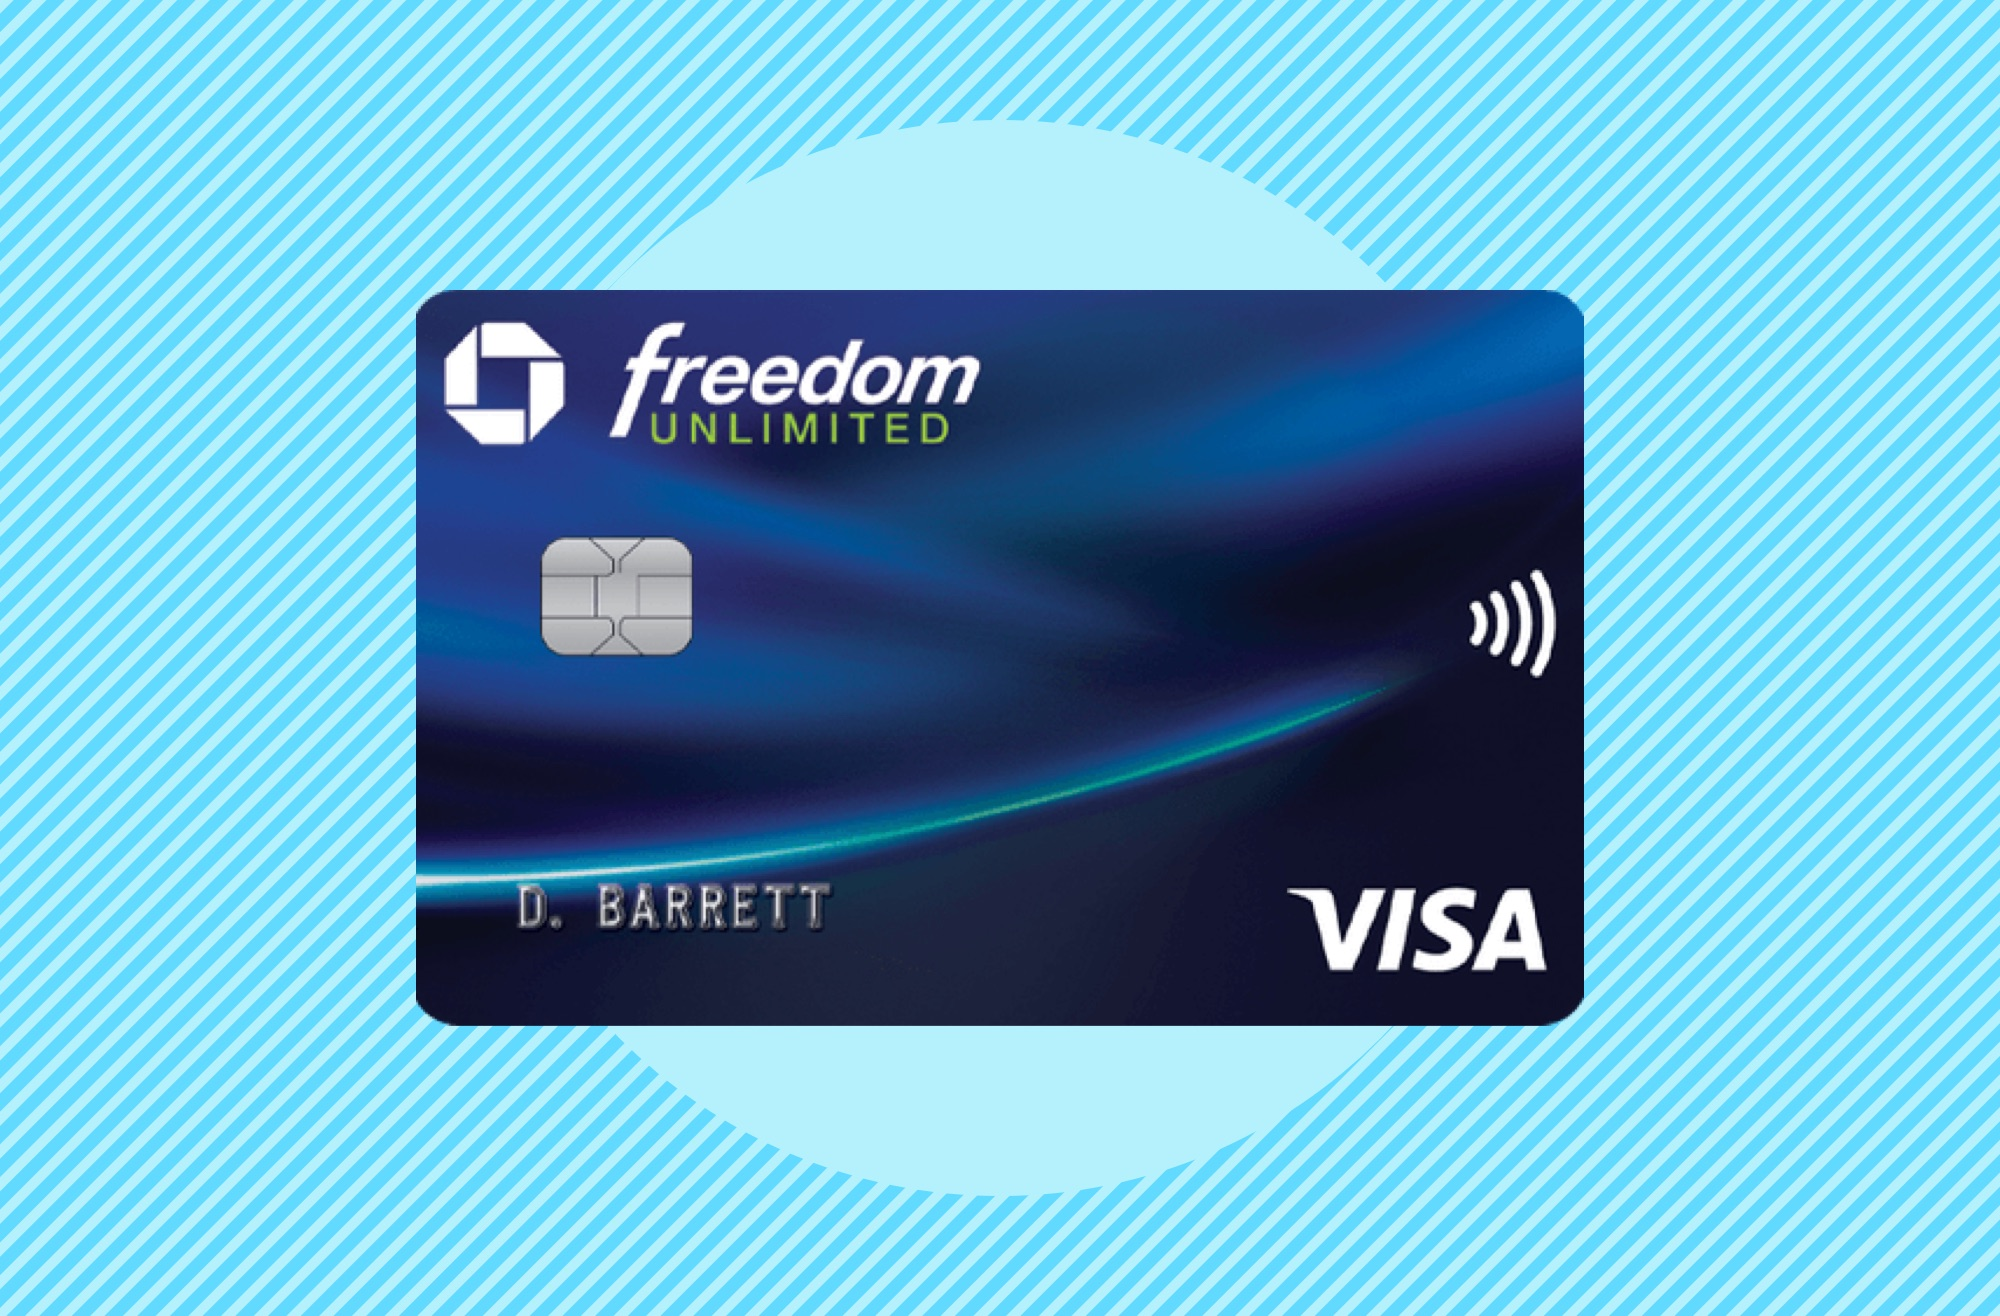 Image to accompany review of the Chase Freedom Unlimited credit card